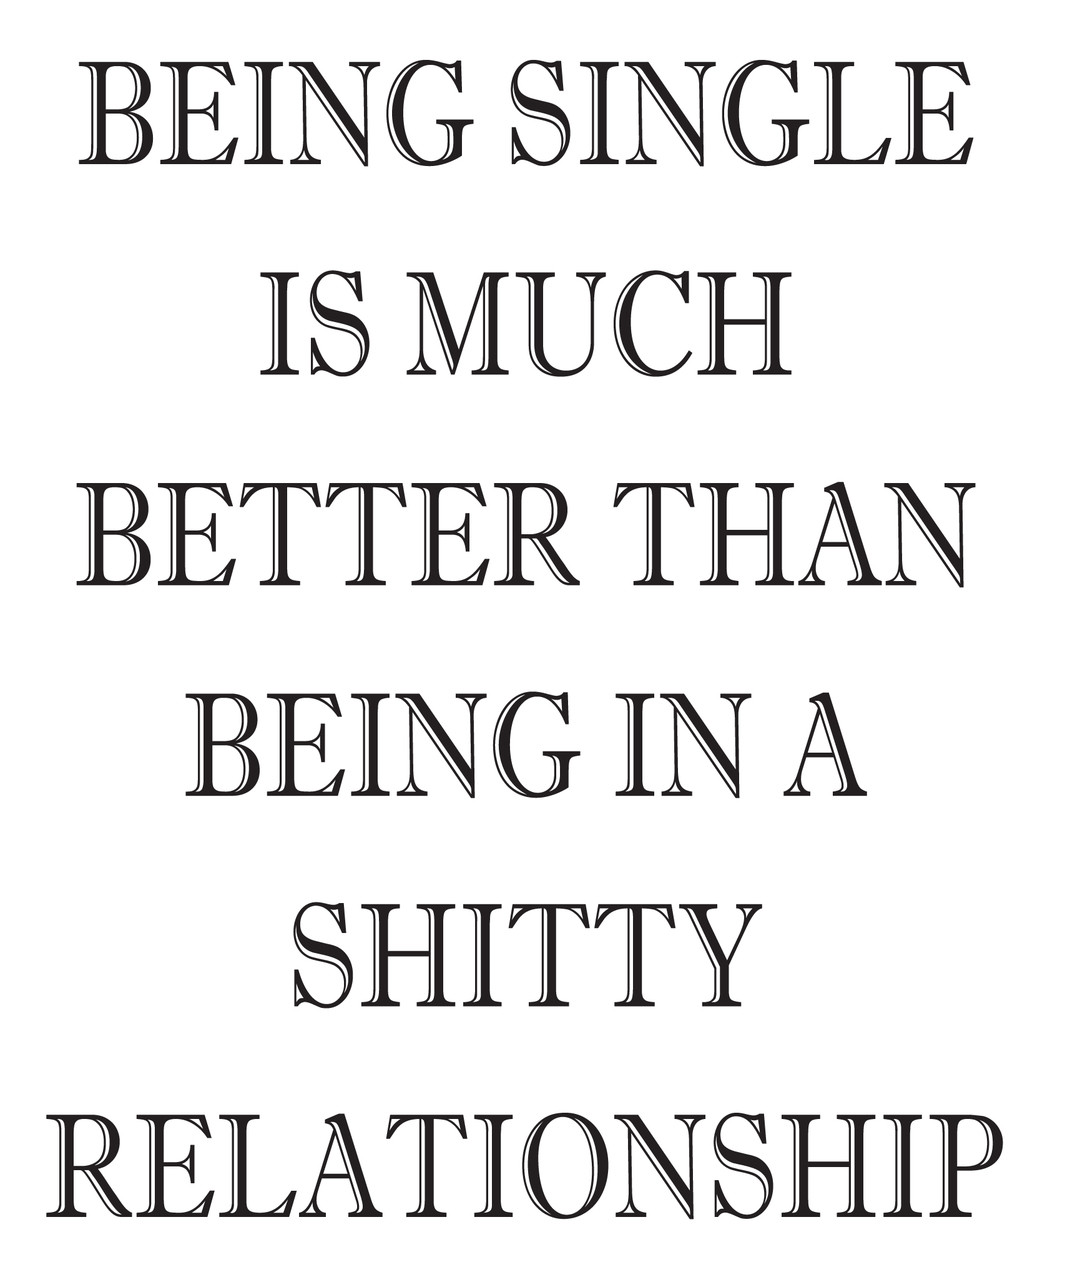 Being Single Is Much Better Than In A Shitty Relationship Personalized Birthday Card